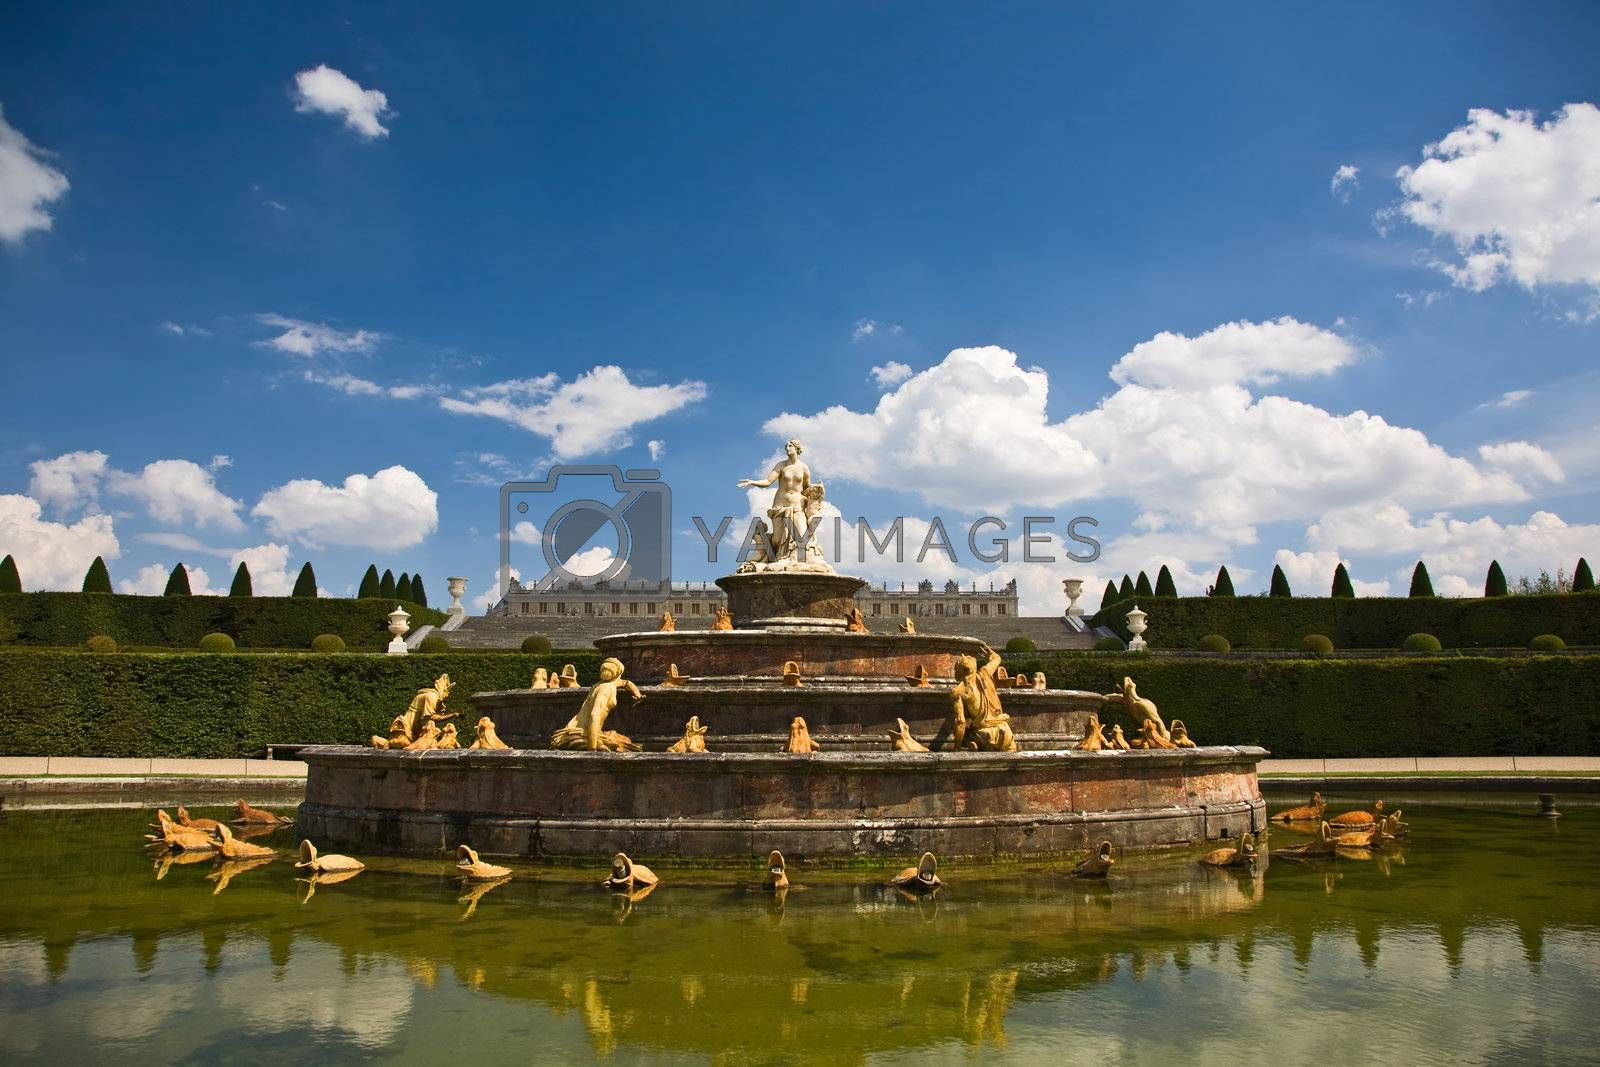 View over one of the main fountains in the Versailles Palace, in Paris, France.